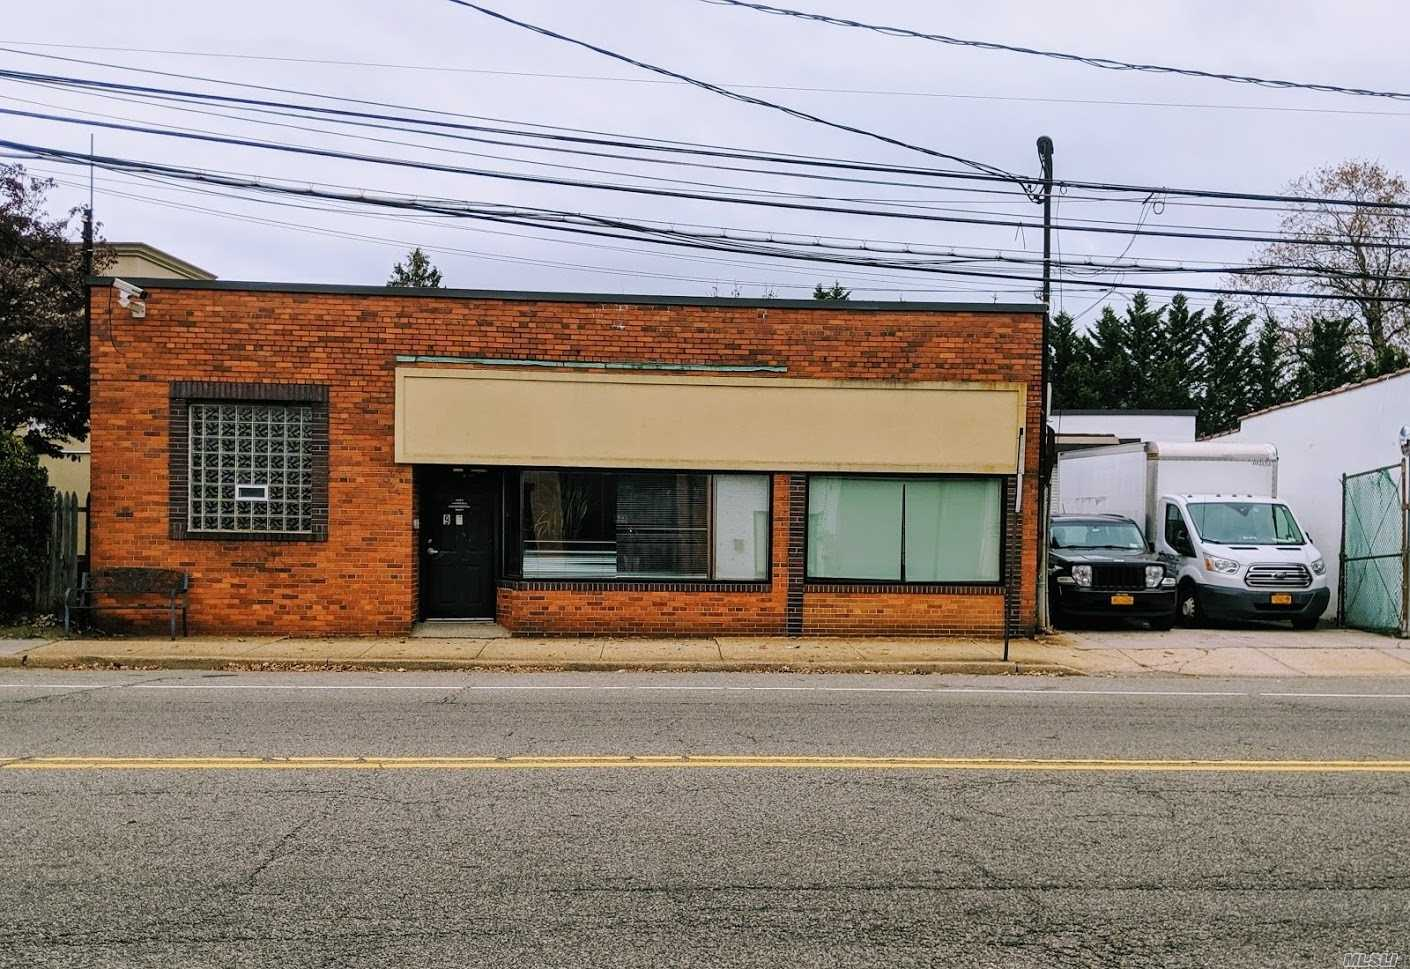 Free Standing Commercial Property Reception Area, 10 To 13 Offices Private And Semi Private, Conference Room, Lunch Room, Offices 3500 Sq Ft Warehouse 1100 Sq Ft And 1000 Sq Ft Basement . Parking On Premise Plus Half Block To Municipal Parking. Delivered Vacant Or Leaseback